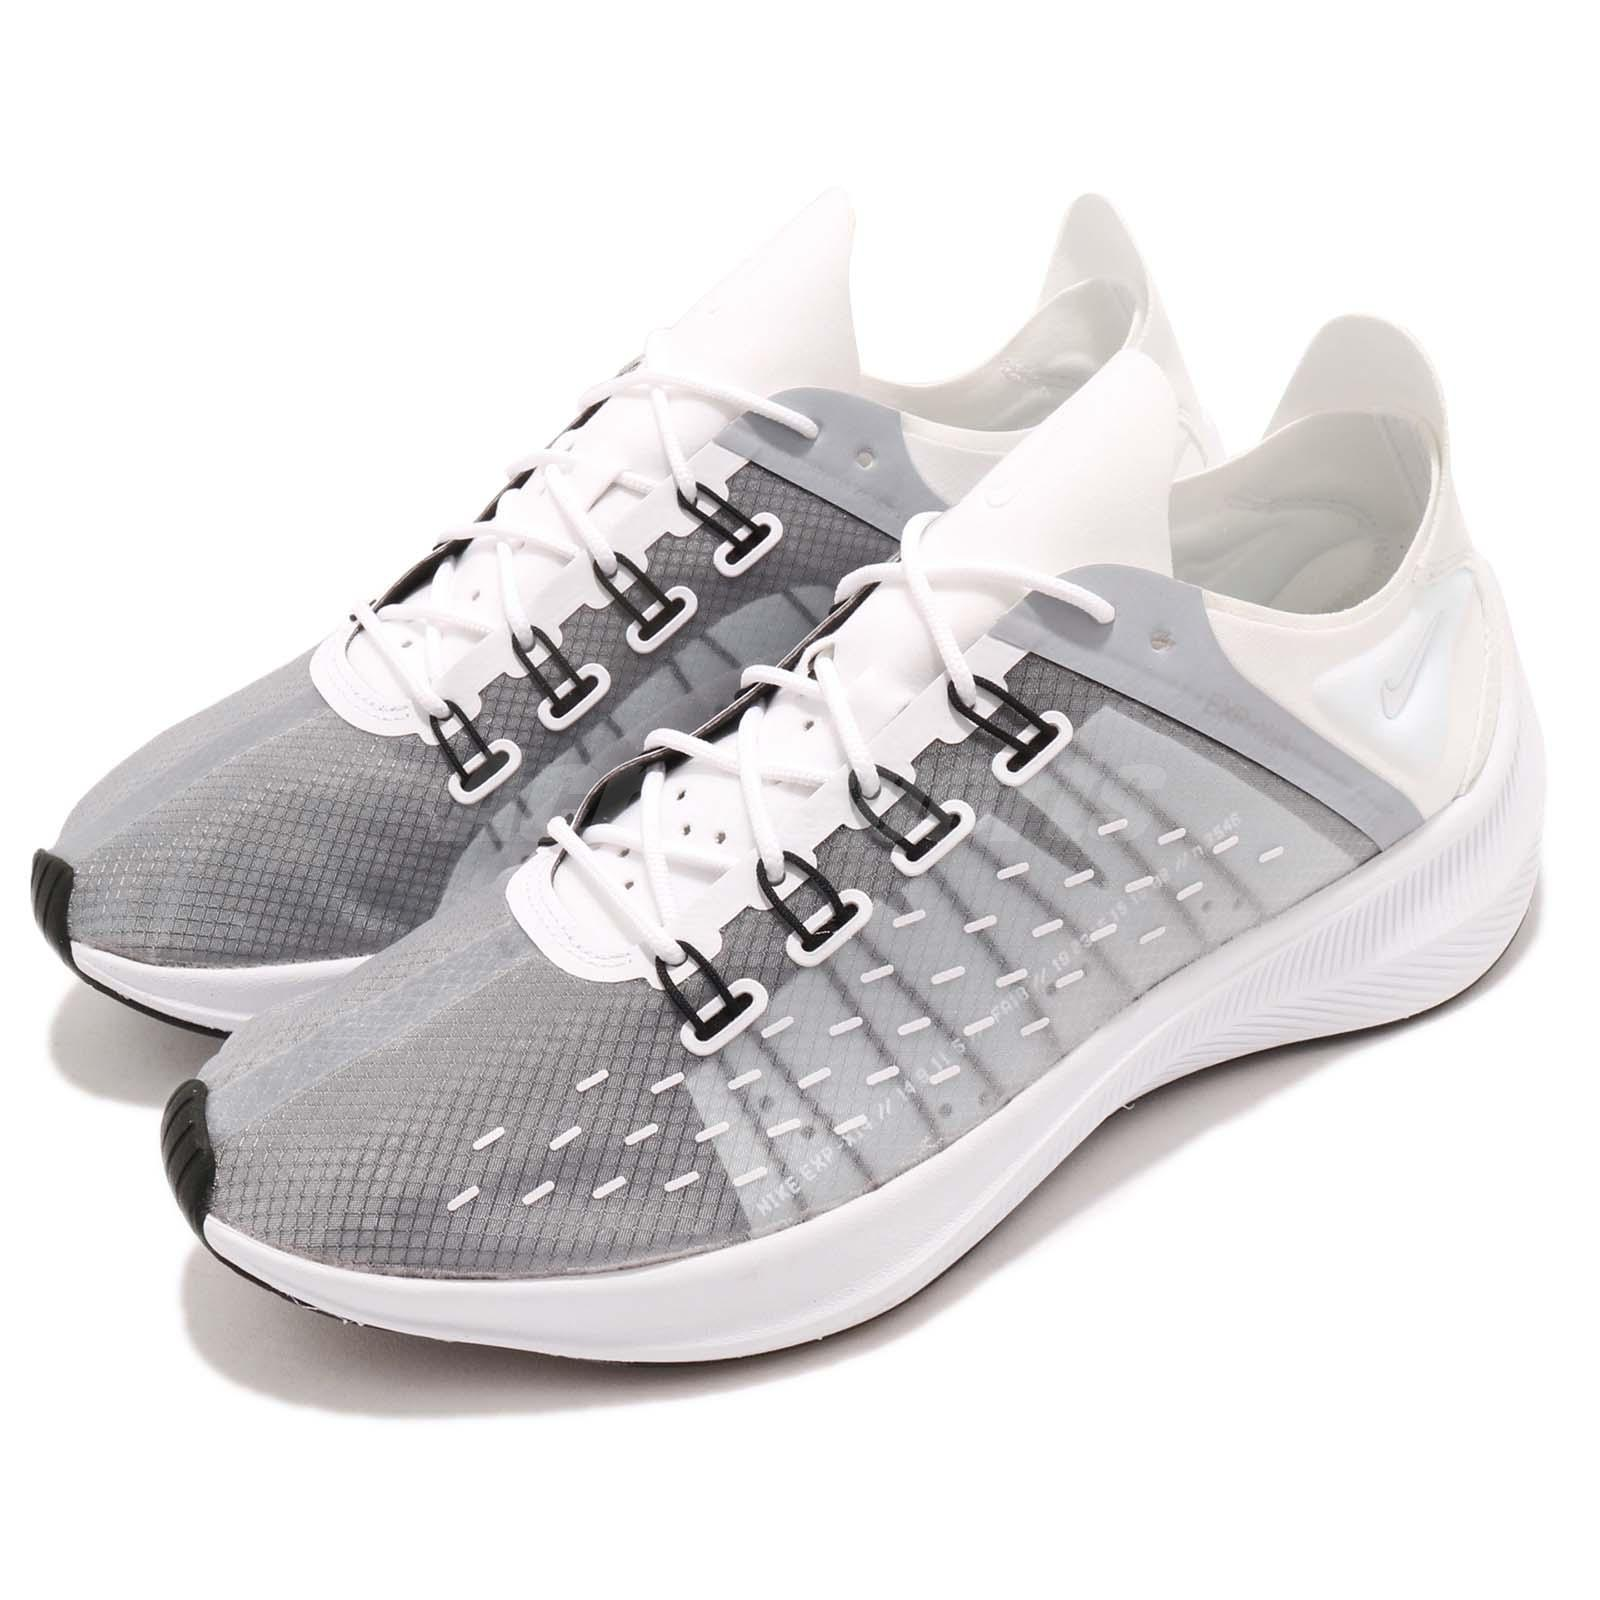 quality design 486d7 e2b63 Details about Nike EXP-X14 White Grey Black Men Running Training Shoes  Sneakers AO1554-100